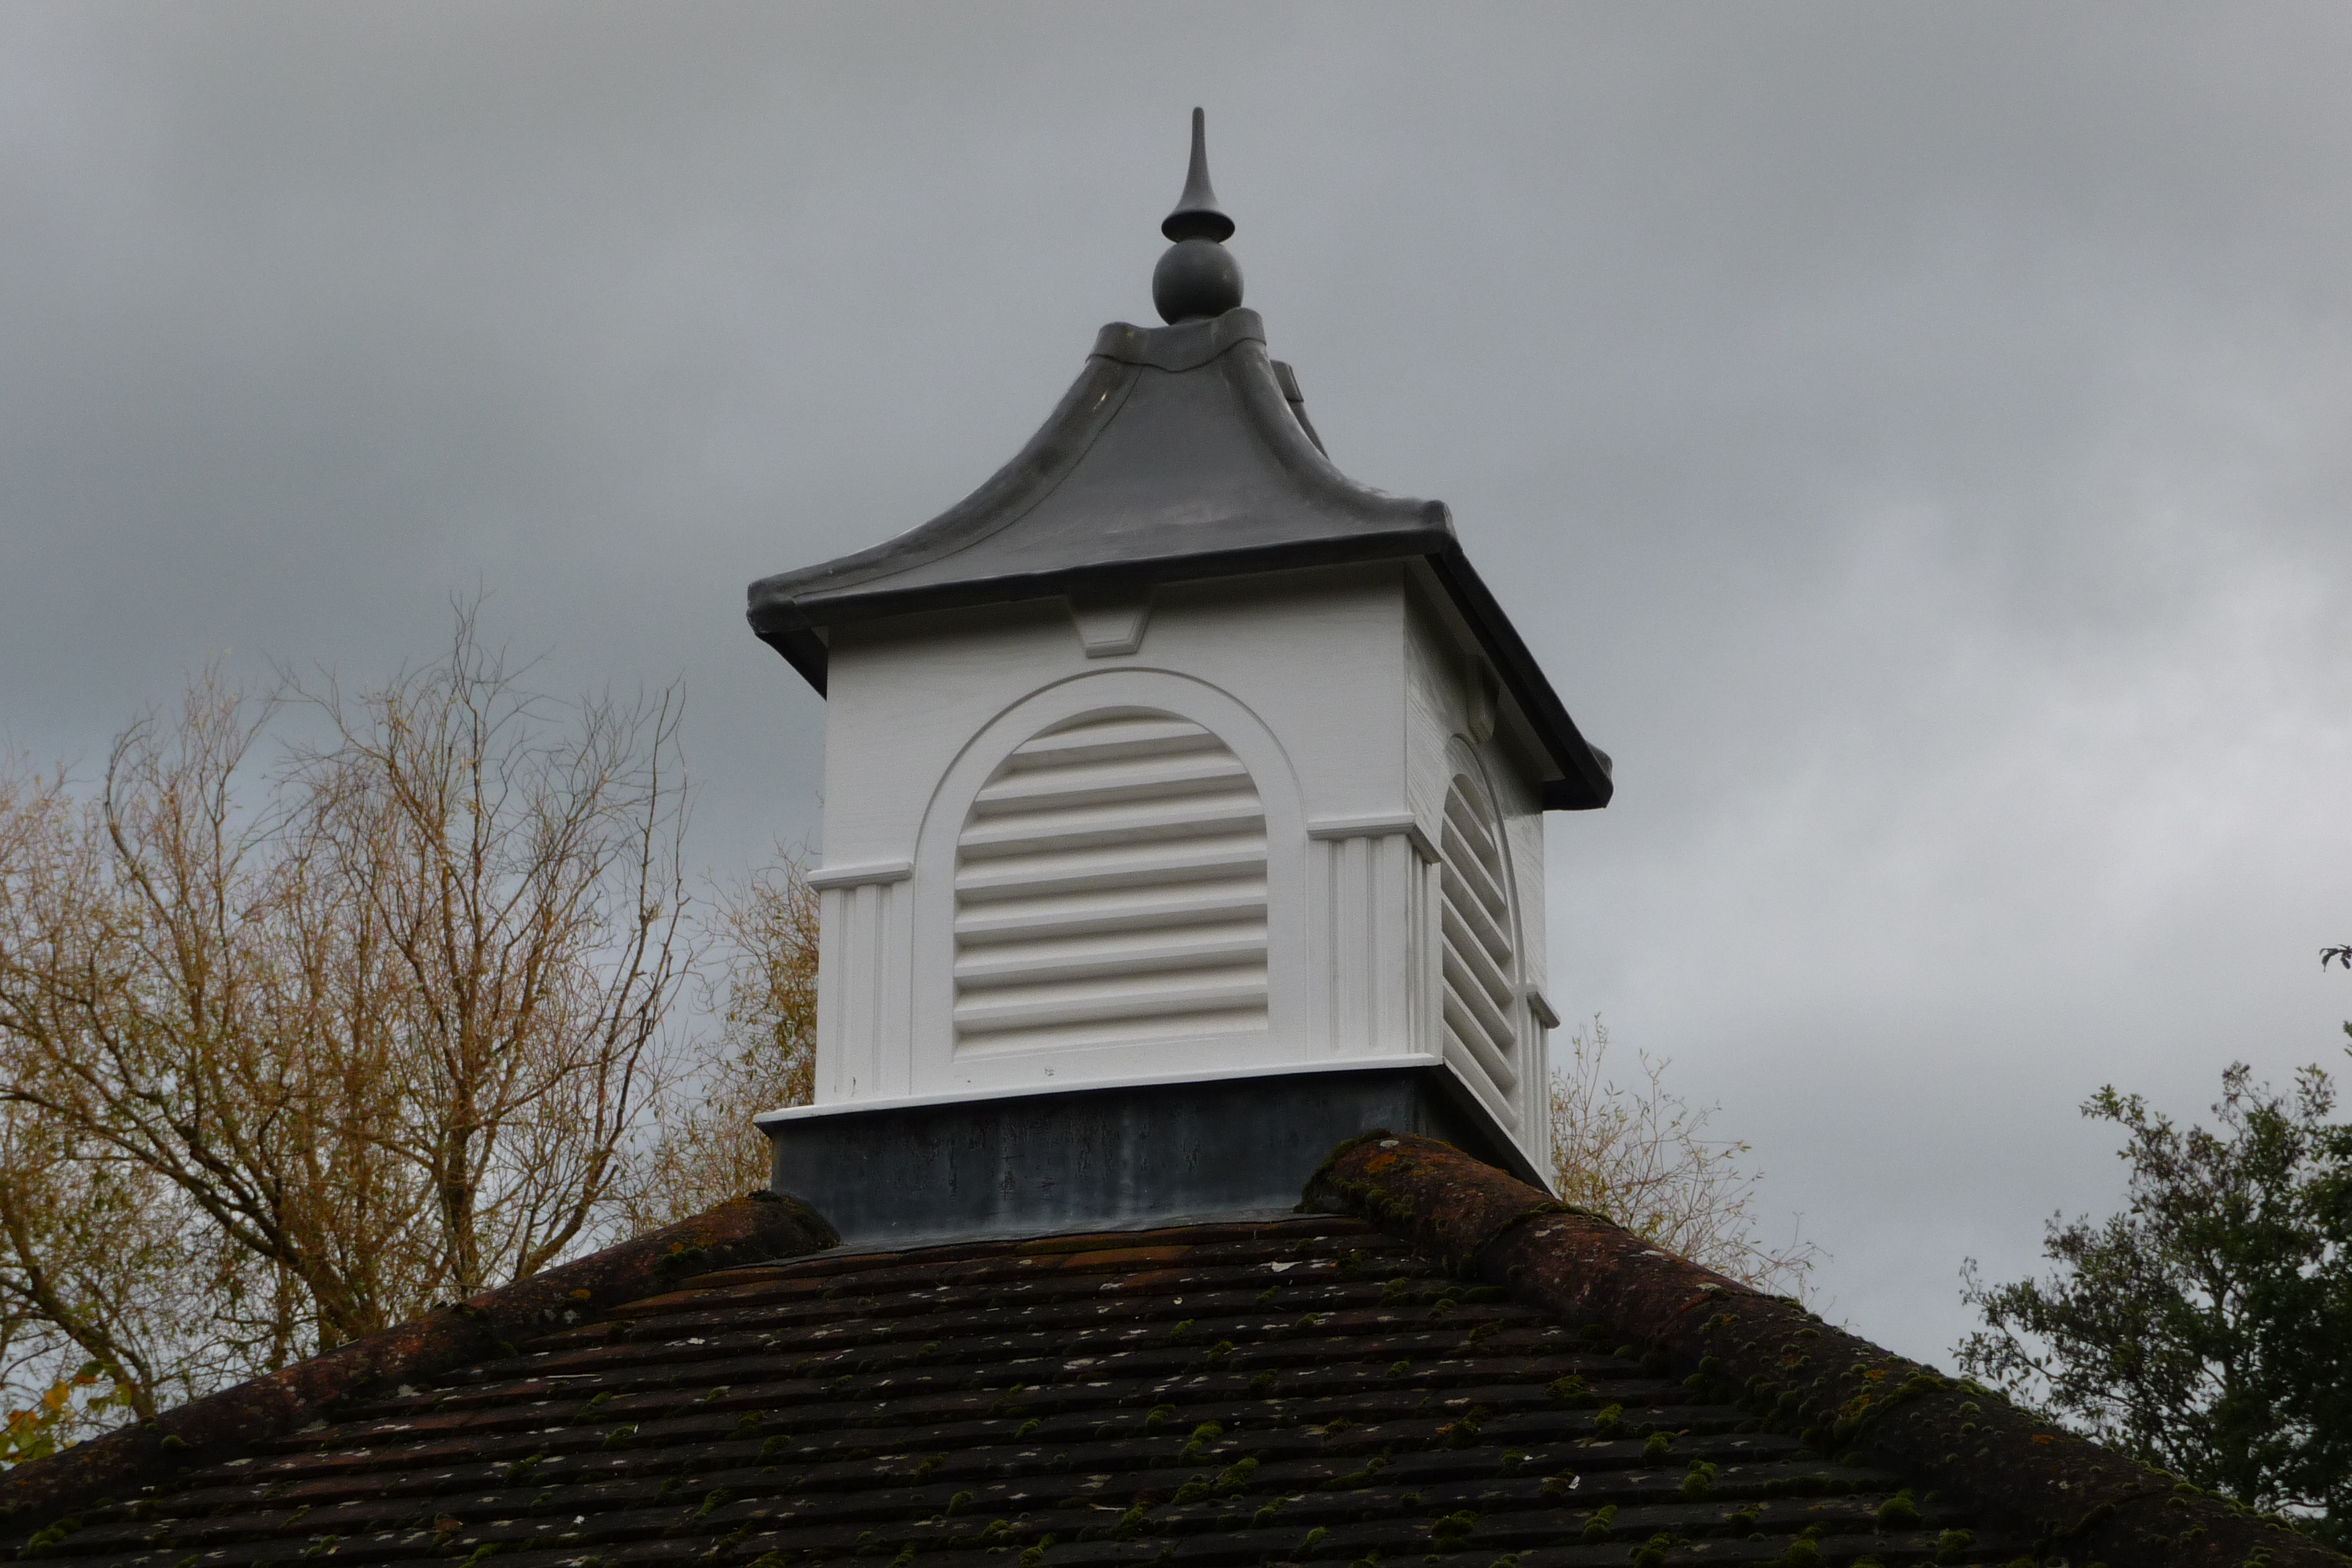 Oxford roof turrets